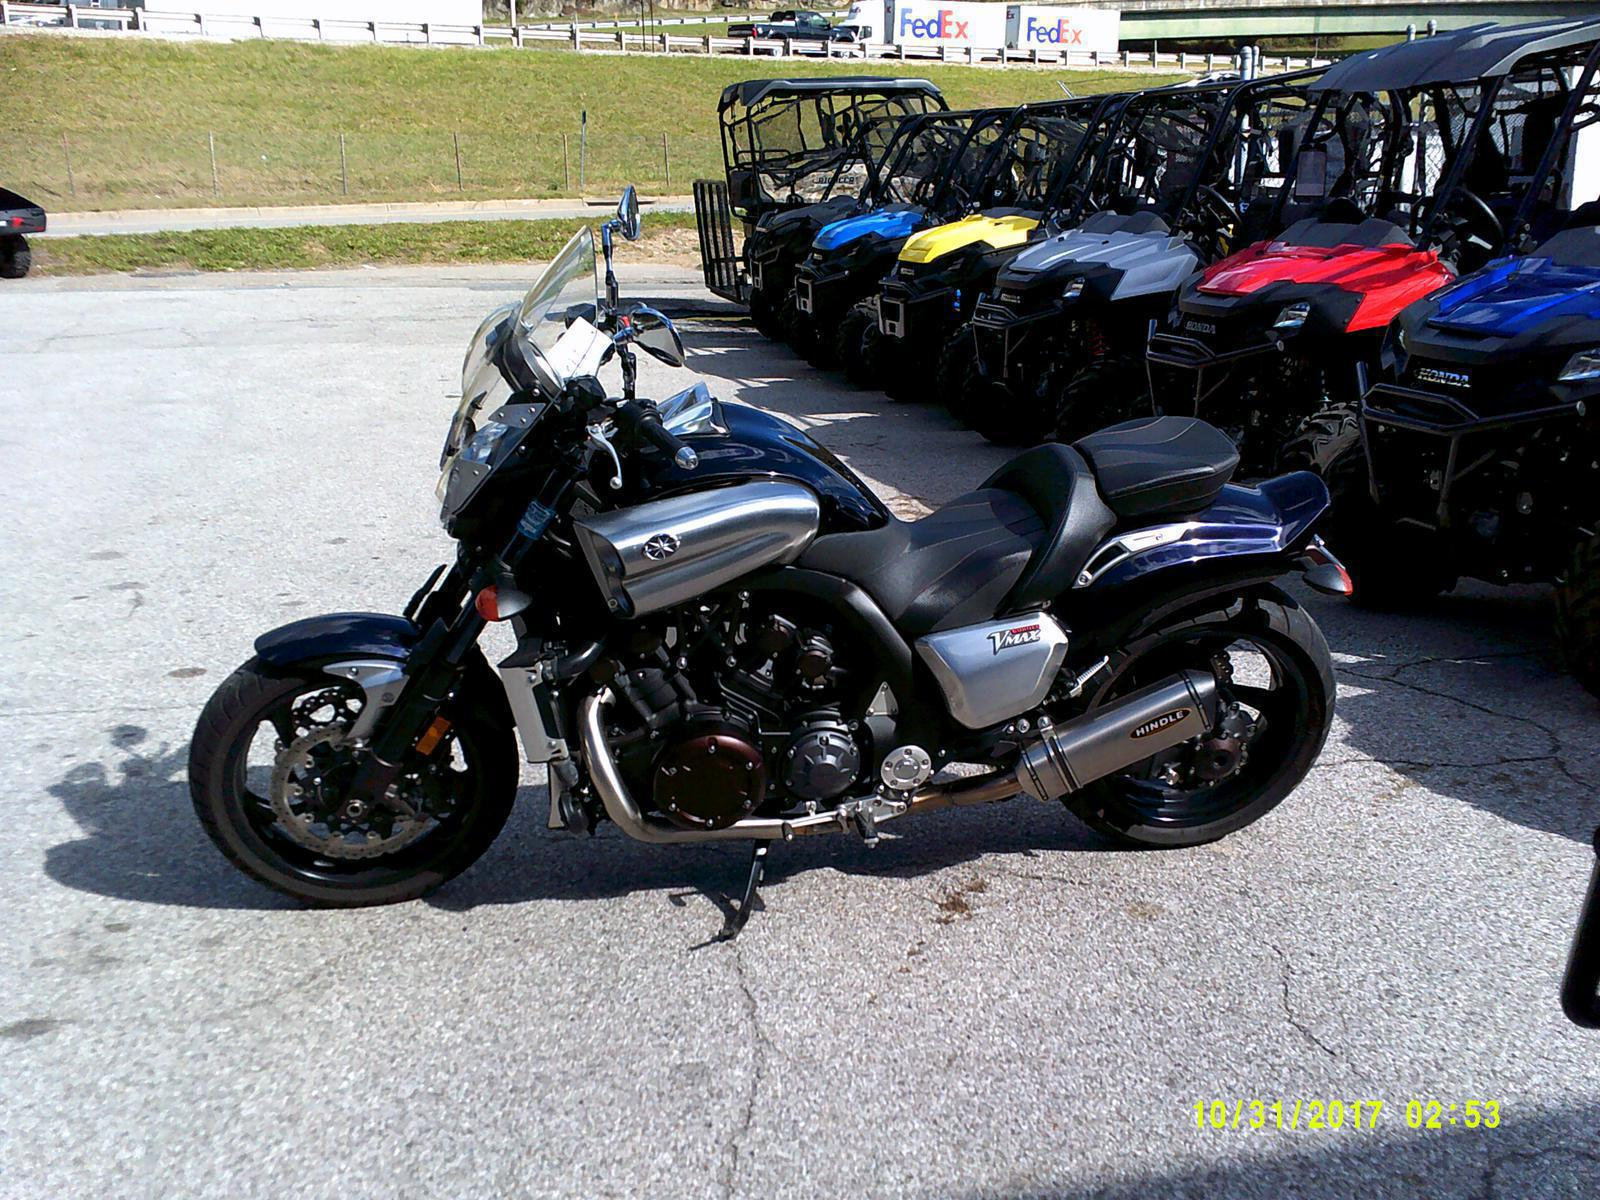 2013 Yamaha VMAX for sale in Charleston WV Dohm Cycles 800